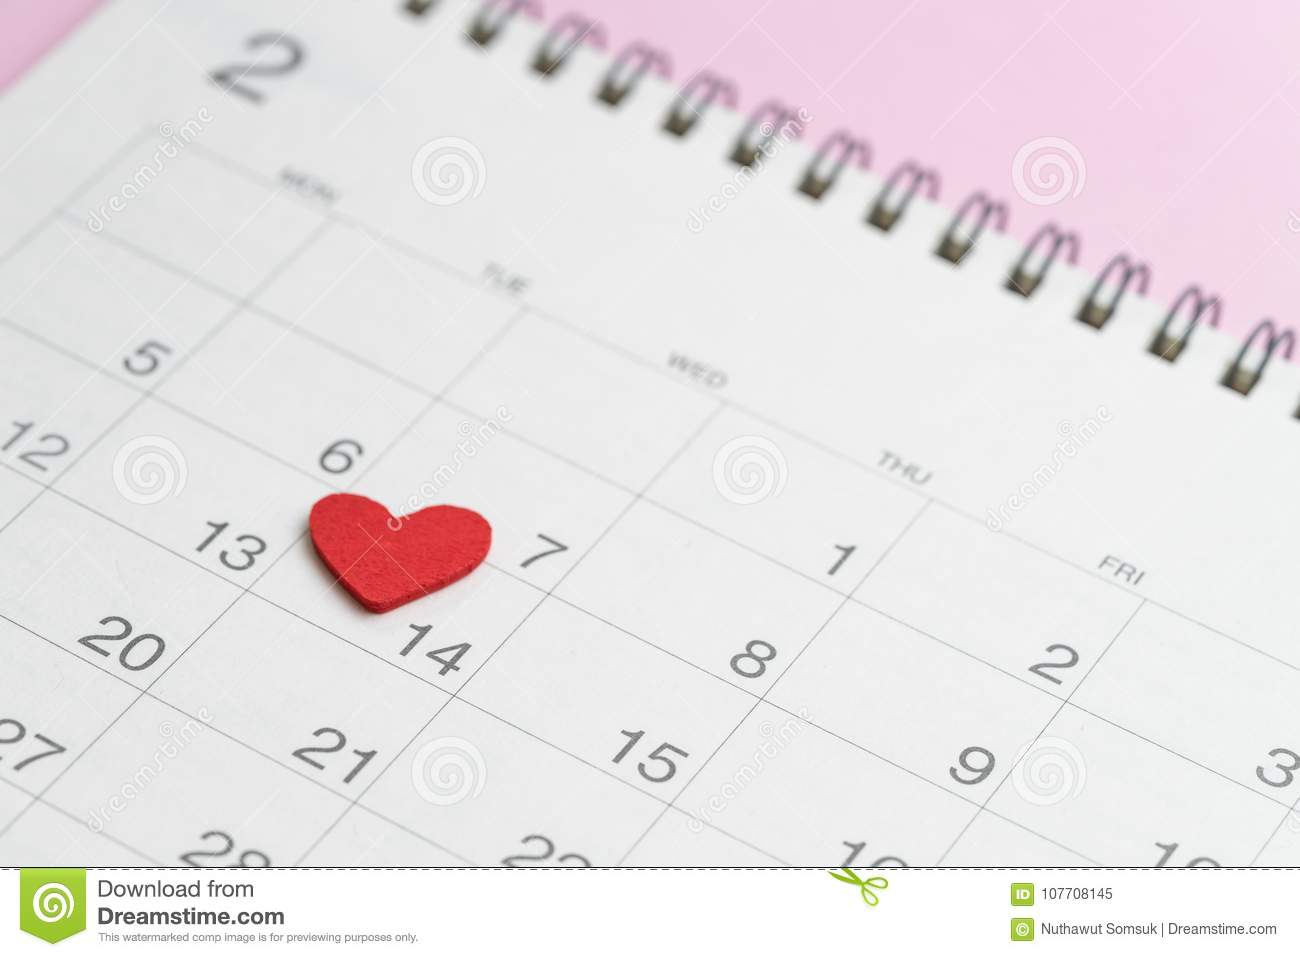 Usi Calendar.Red Heart Shape On 14th February Calendar On Pink Background Using